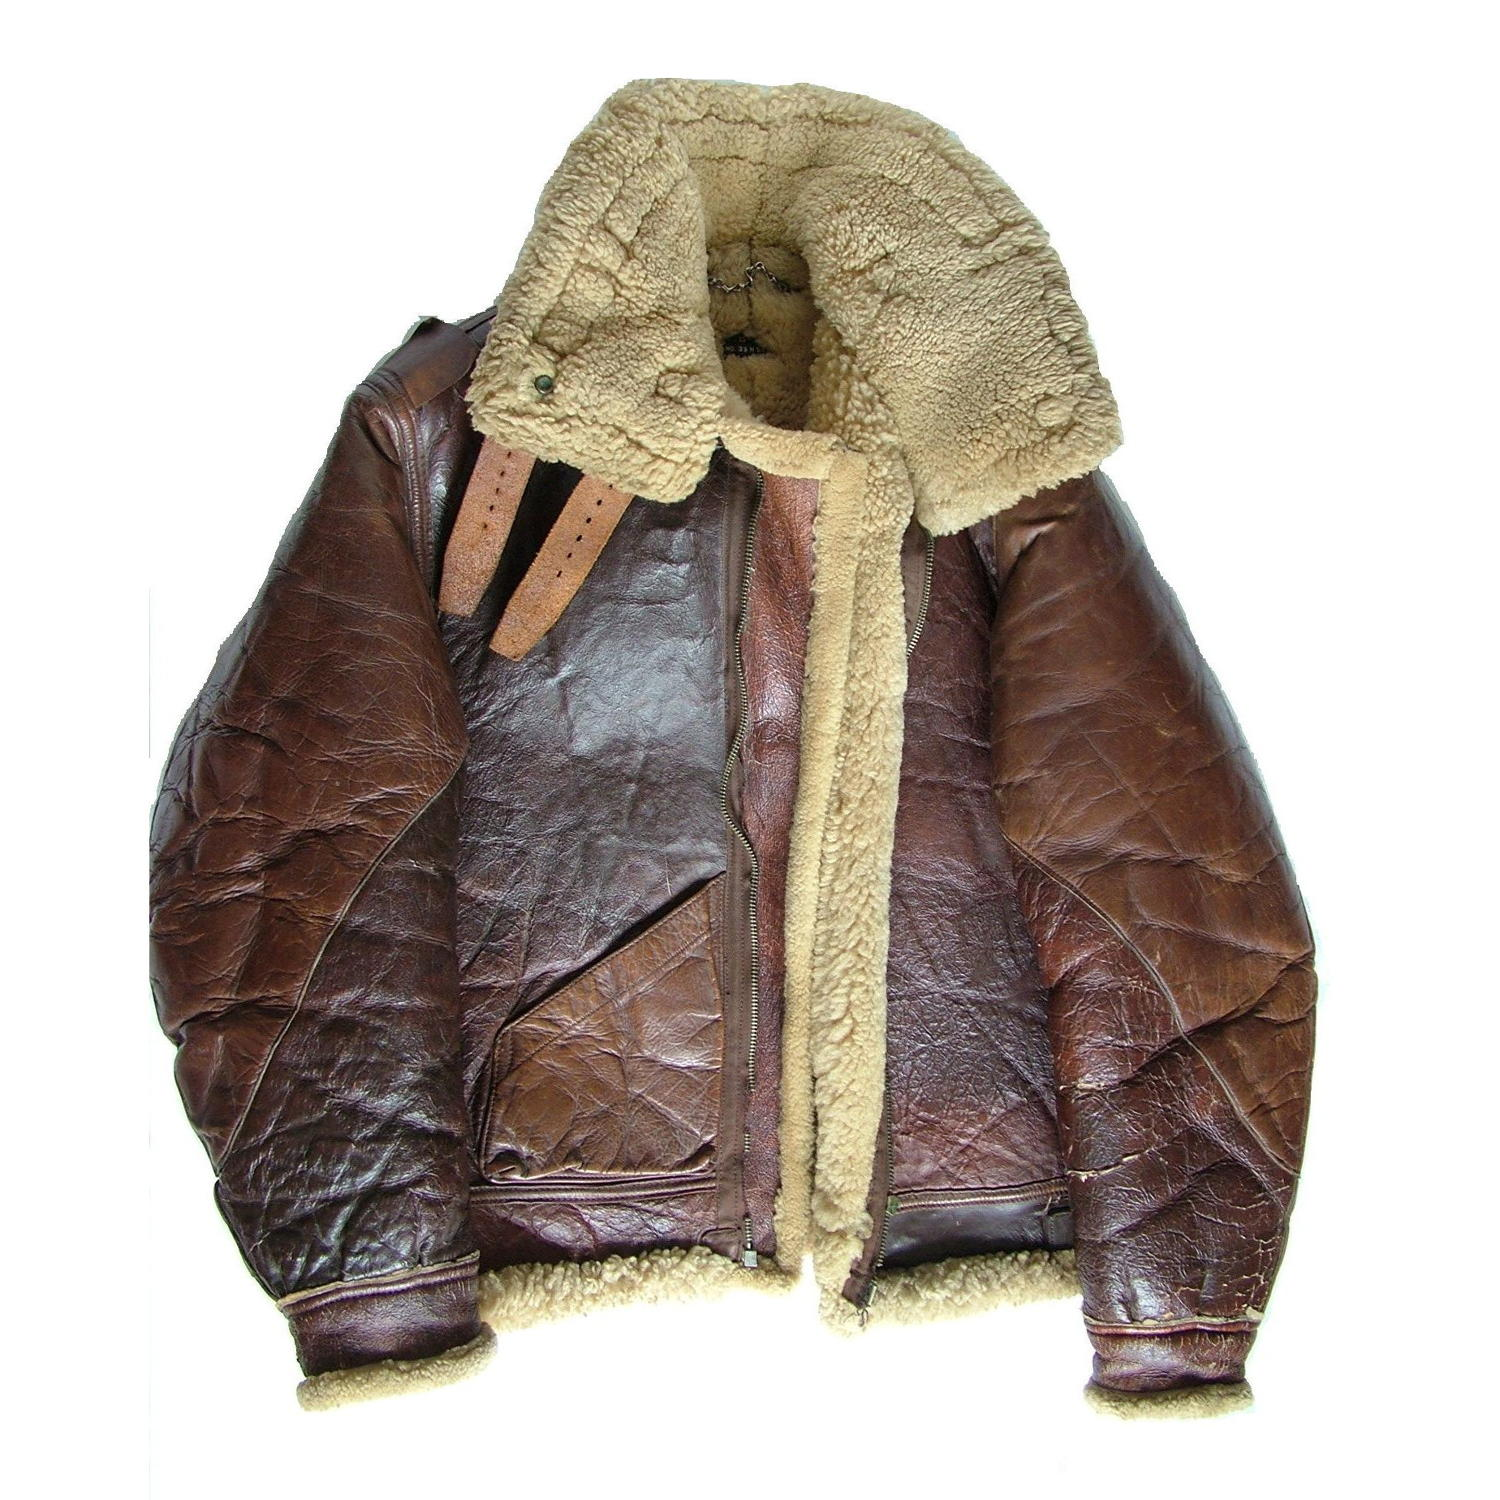 USAAF B-3 Flying Jacket